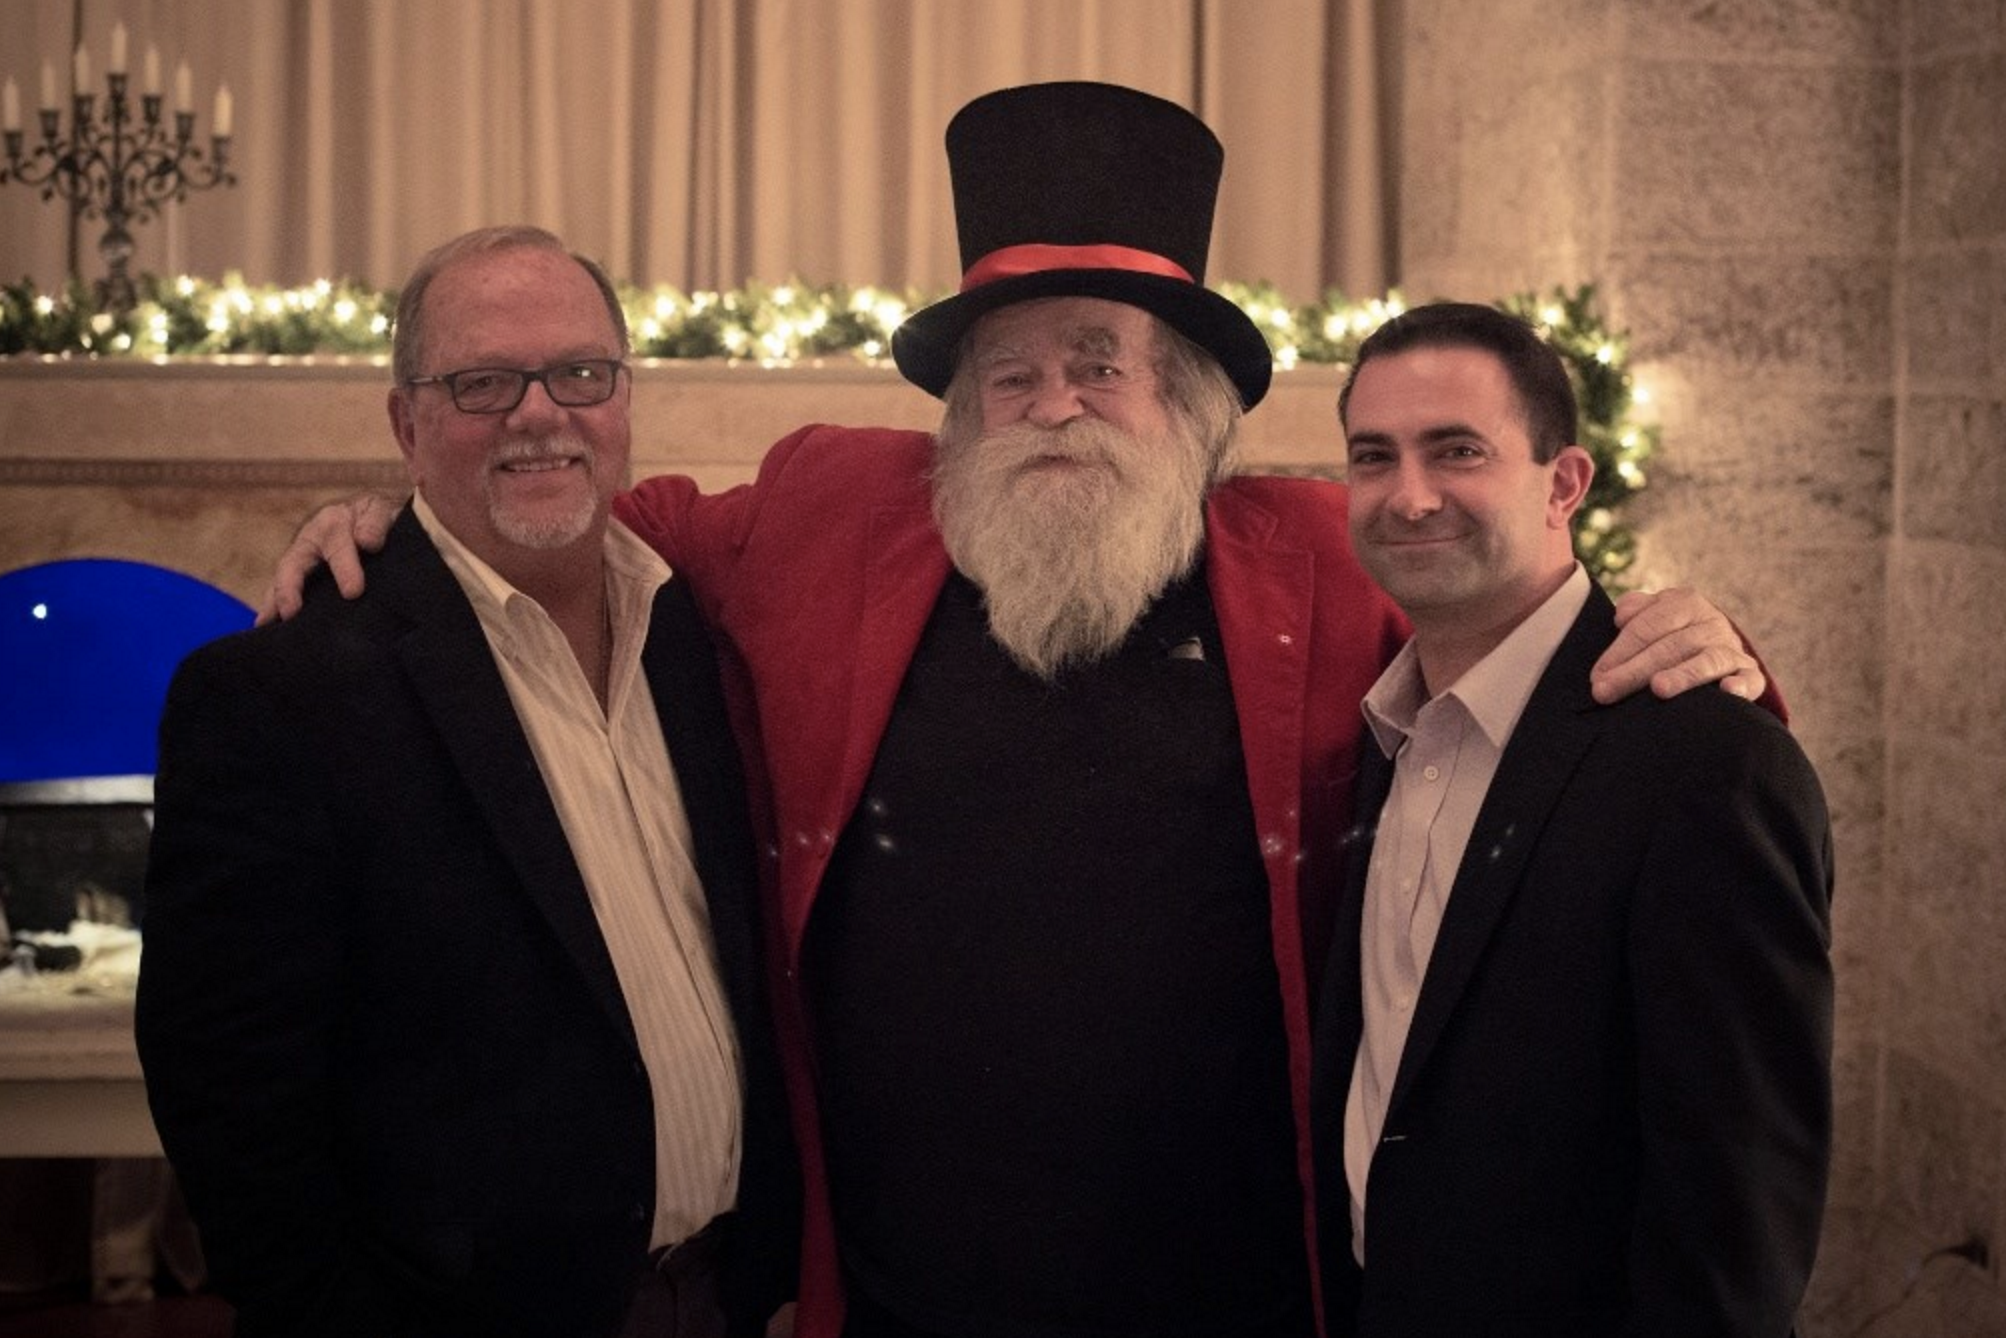 Michael and A.J. join in the festivities at Glencairn Museum with Jim Morrison, president at The National Christmas Center in Lancaster Pennsylvania